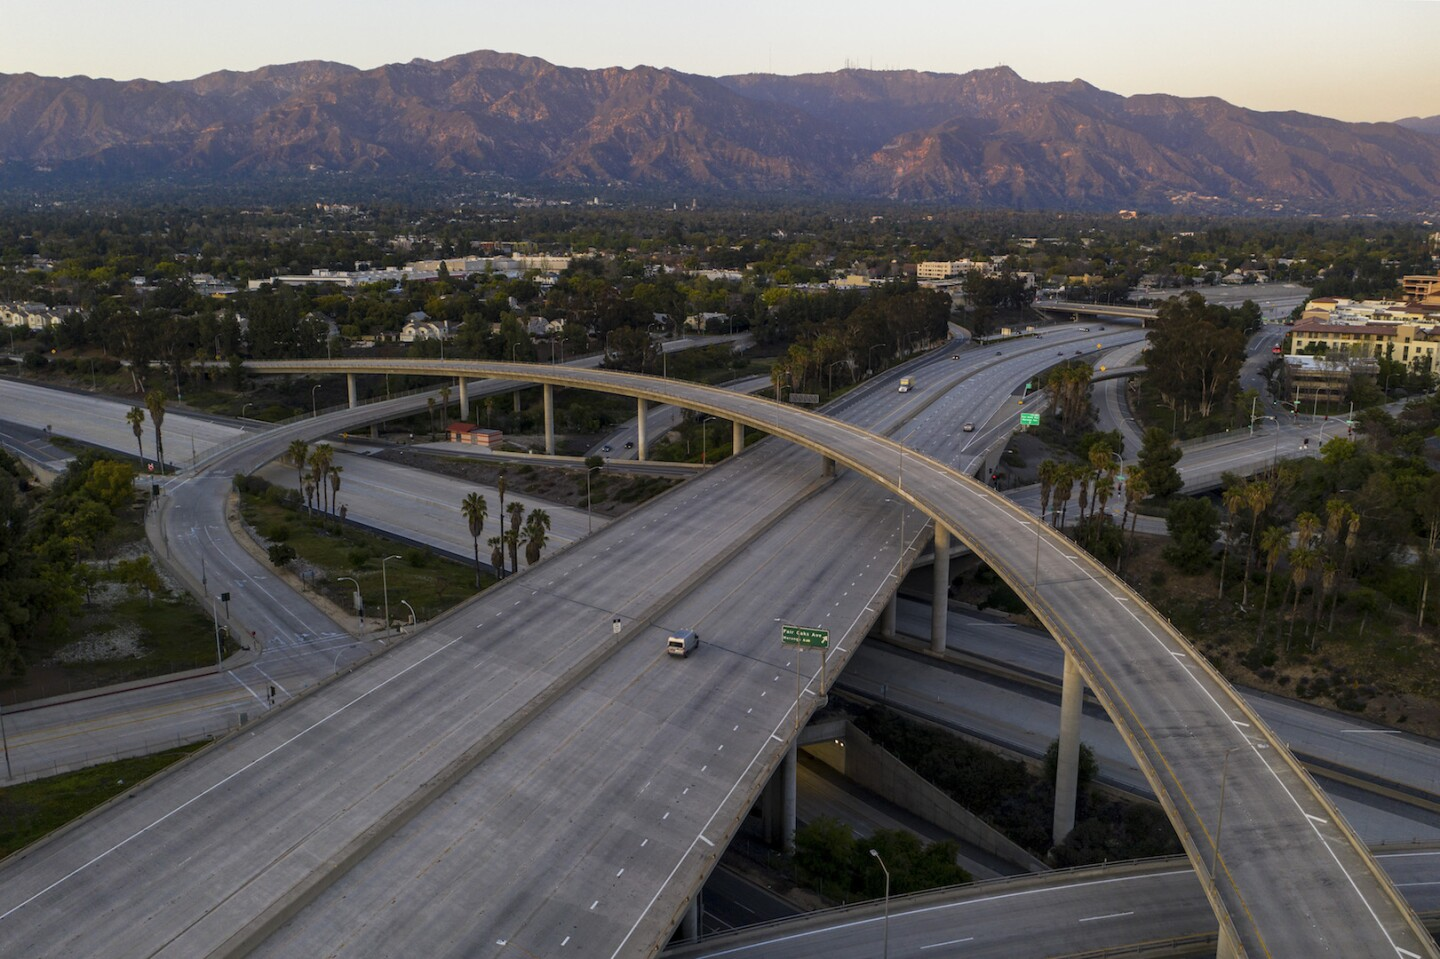 Empty freeways during covid-19 pandemic, with L.A. mountains in the back